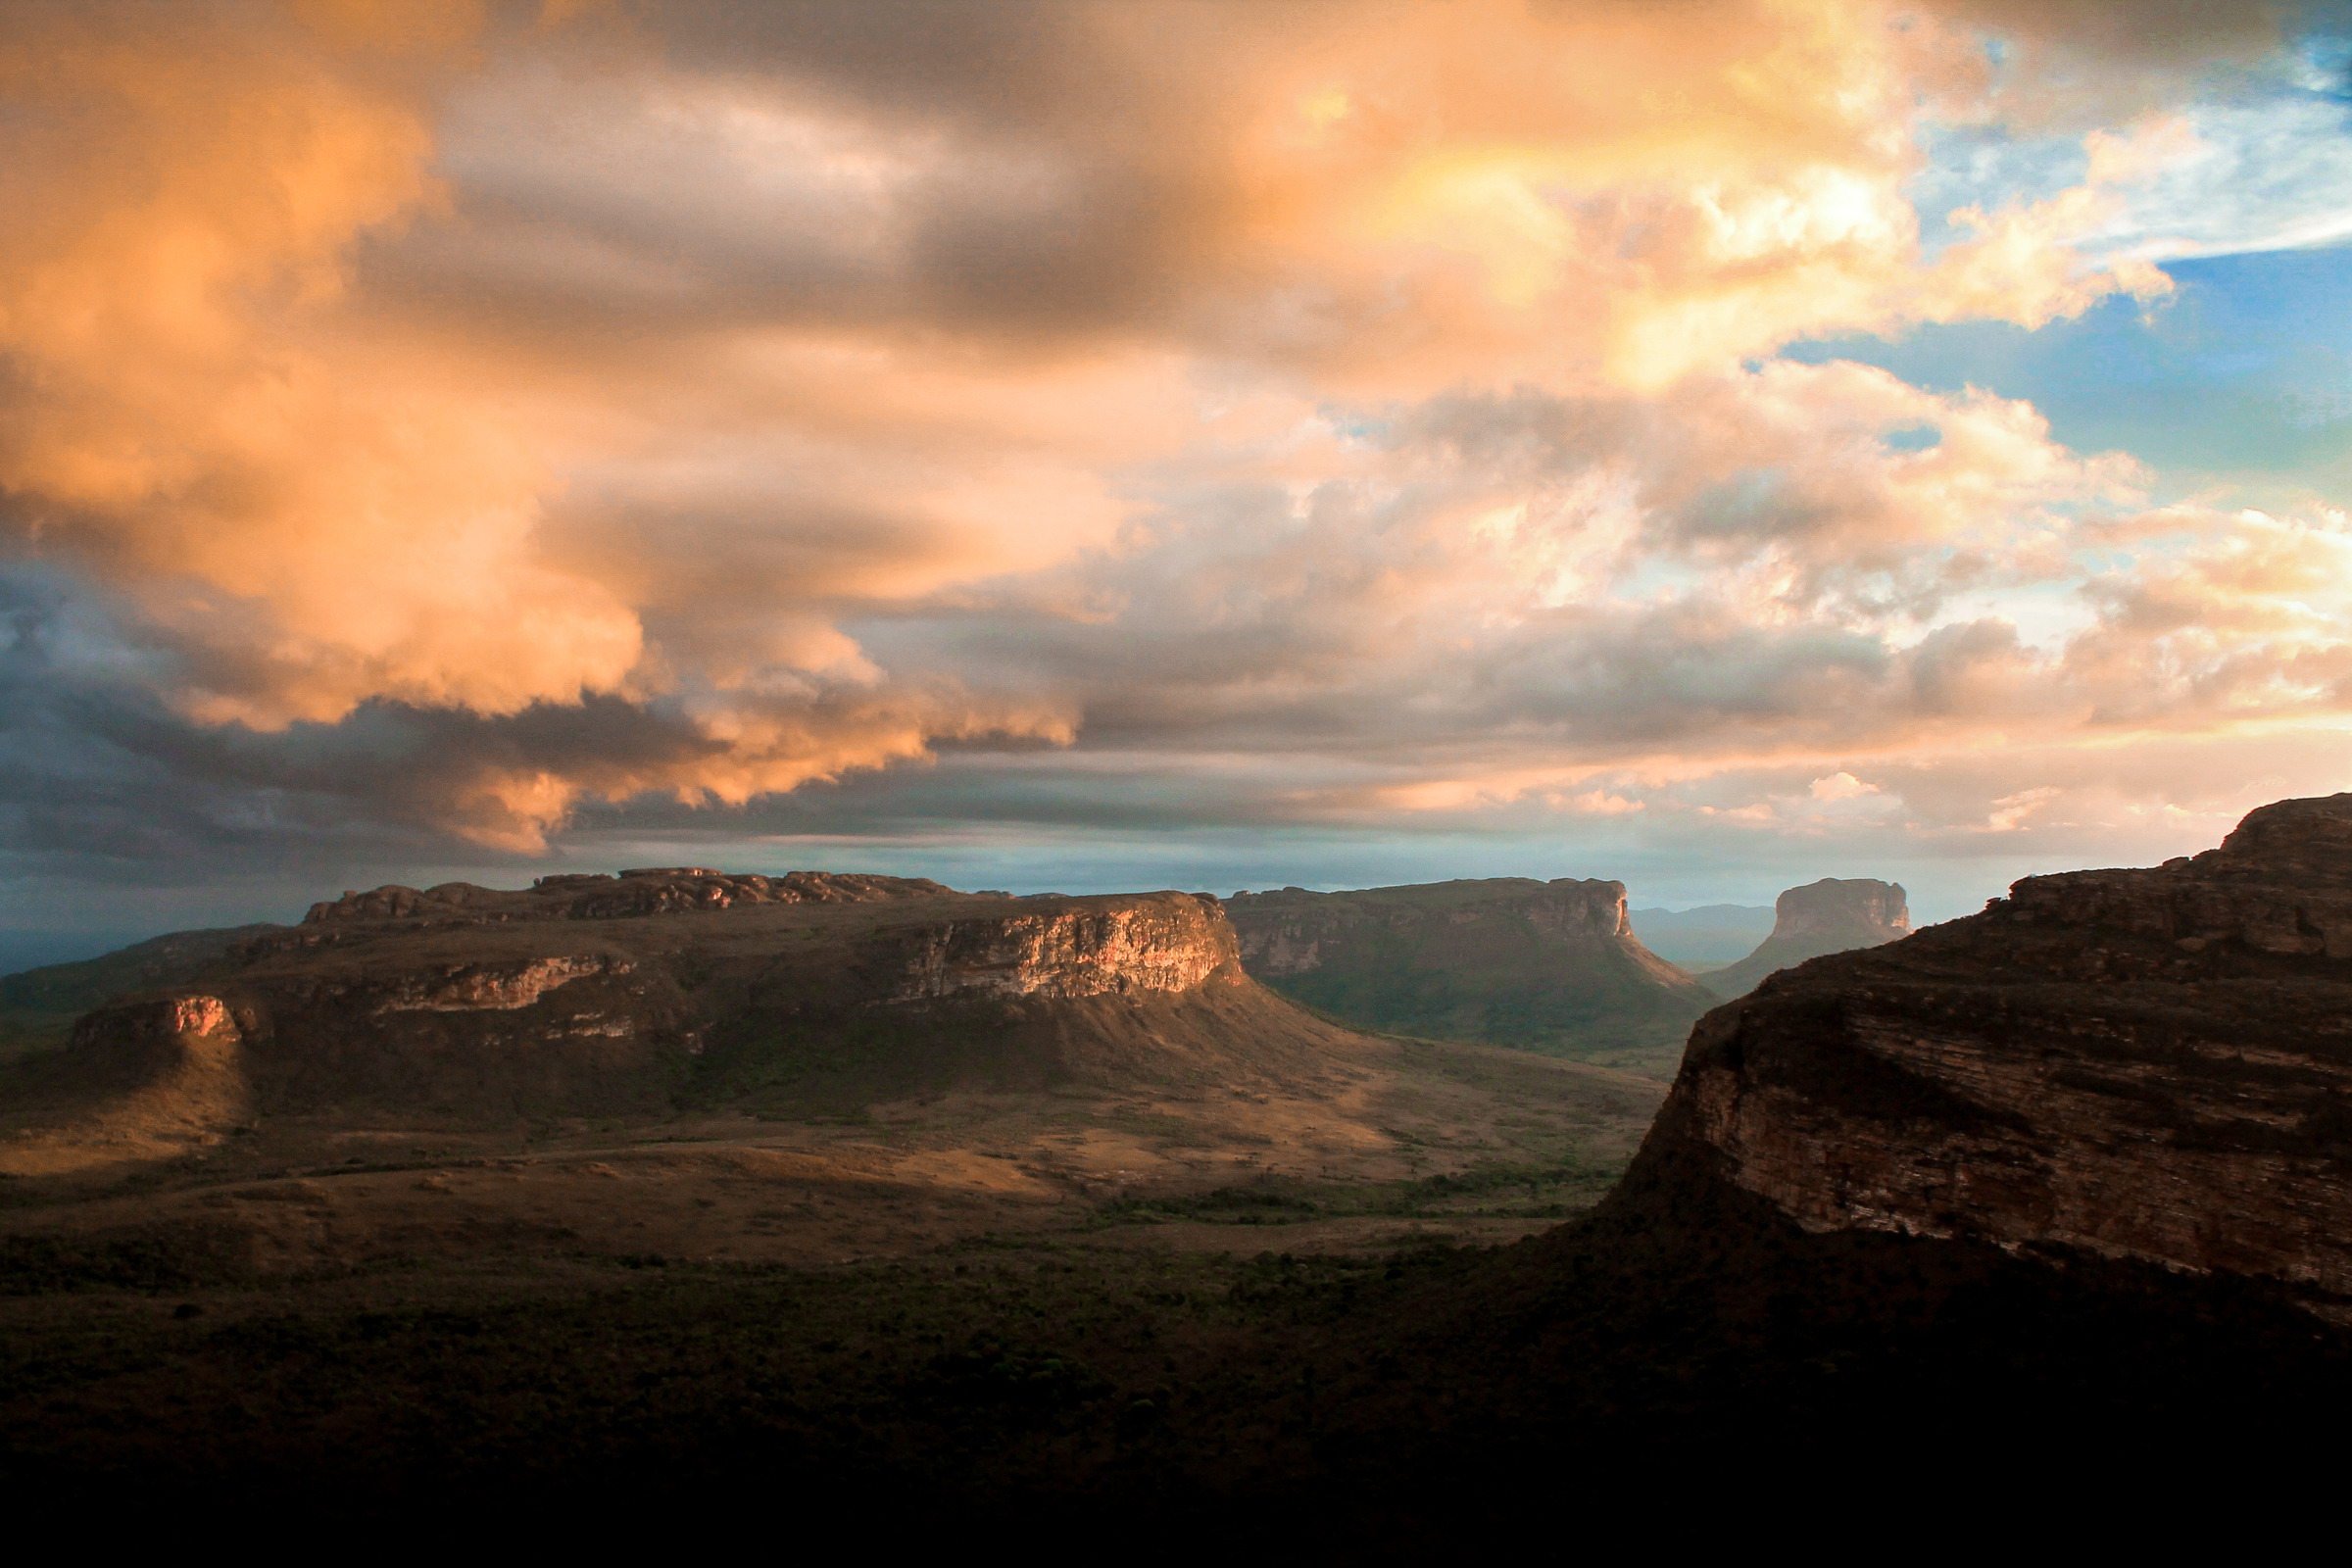 As evening approached in Morro do Pai Inácio, Chapada Diamantina, in the extreme north of Espinhaço Mountain Range, Bahia state, an unexpected light in the last minutes of a hazy day created this spectacular sunset.